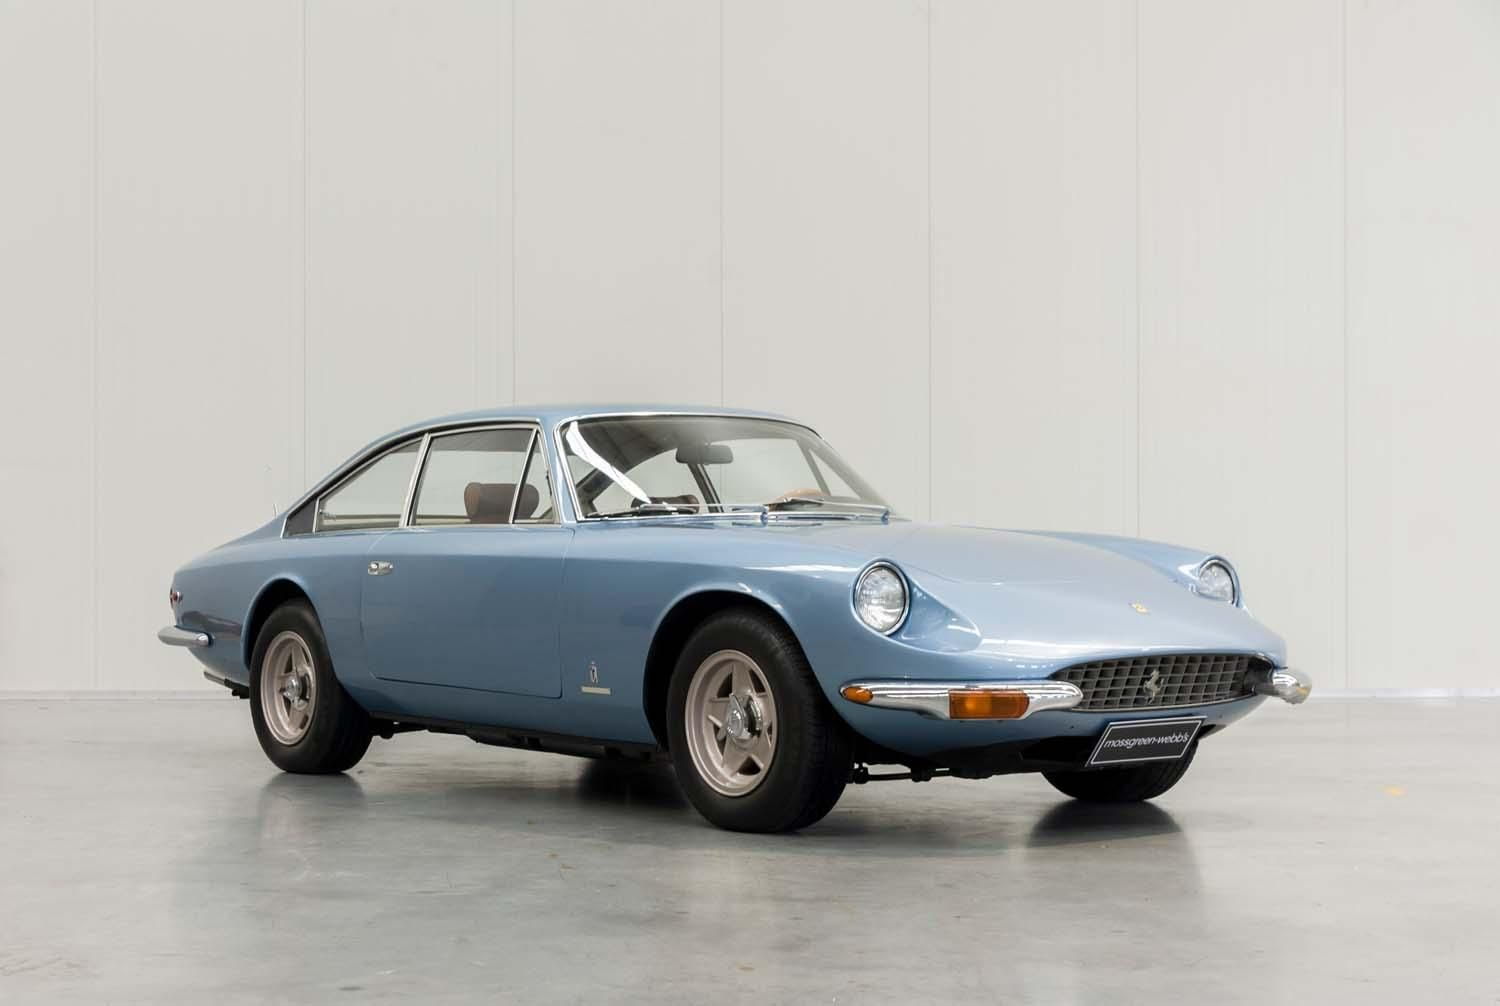 42mw 1969 Ferrari 365gt 2 2 Lhd N 1969 Ferrari 365gt 2 2 Lhd Chassis No 13141 Engine No 245 Vin 7at0660cx15283964 The Mad On Collections Browse And Fi